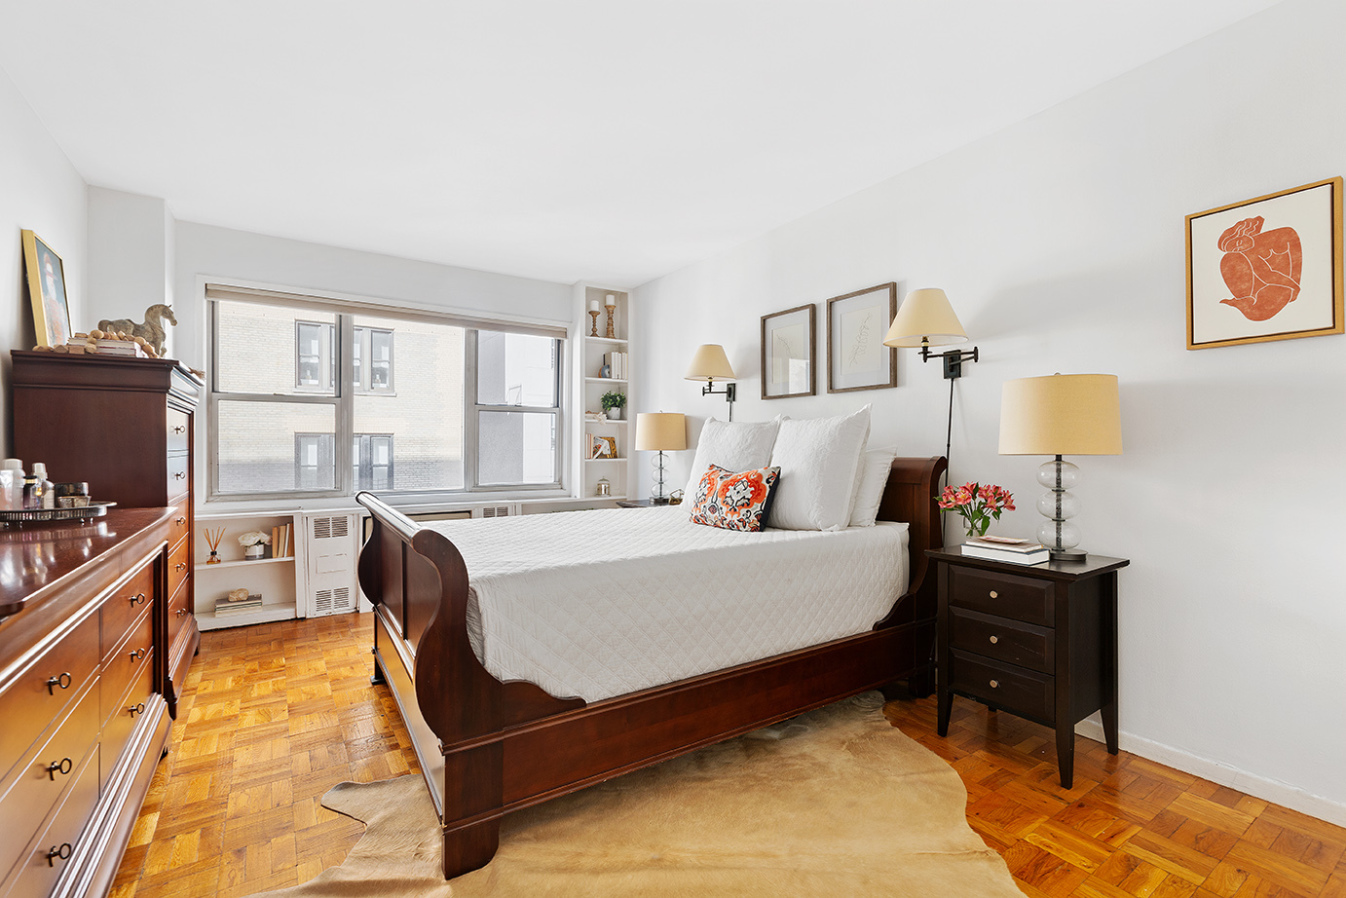 Apartment for sale at 311 East 71st Street, Apt 8-A